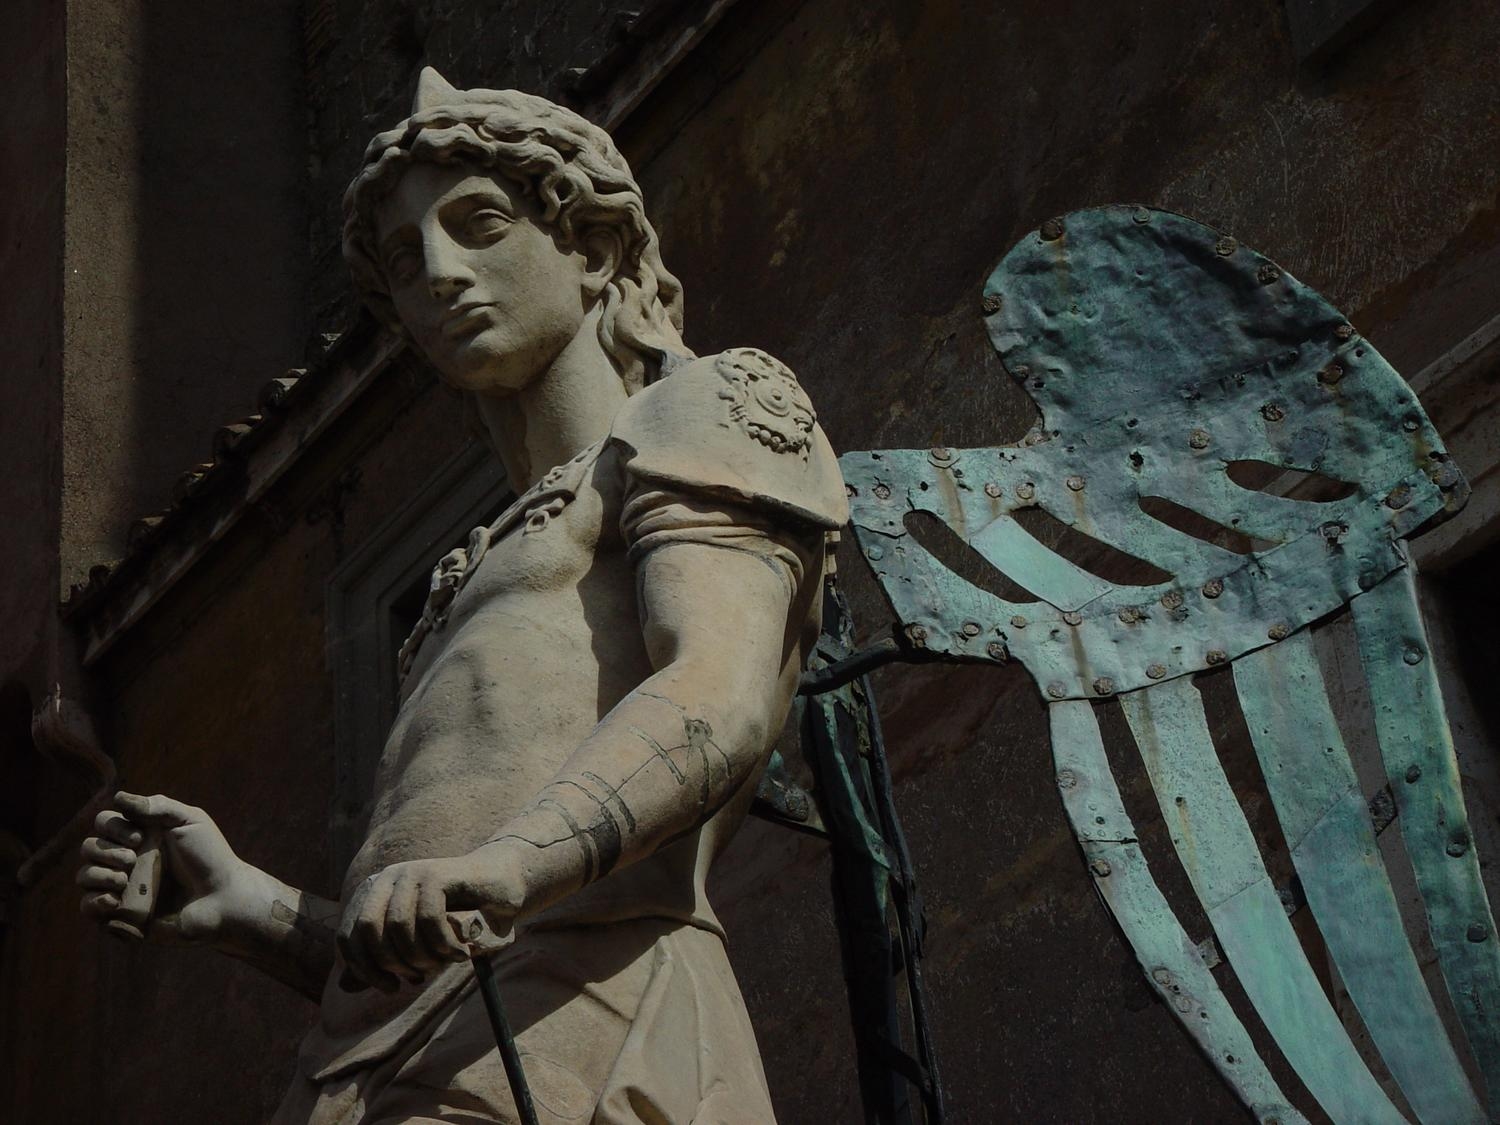 Angel at Castel Sant'Angelo #2 - - Photography becomes art - Making an angel - Angel at Castel Sant'Angelo - Rome, Italy - The archangel Michael decided to sheath his sword and stop killing Romans with plague--this statue by Raffaello da Montelupo (1504–1566) commemorates the end of an epidemic in 590. - Sony DSC-F707 - Tony Karp, design, art, photography, techno-impressionist, techno-impressionism, aerial photography , drone , drones , dji , mavic pro , video , 3D printing - Books -